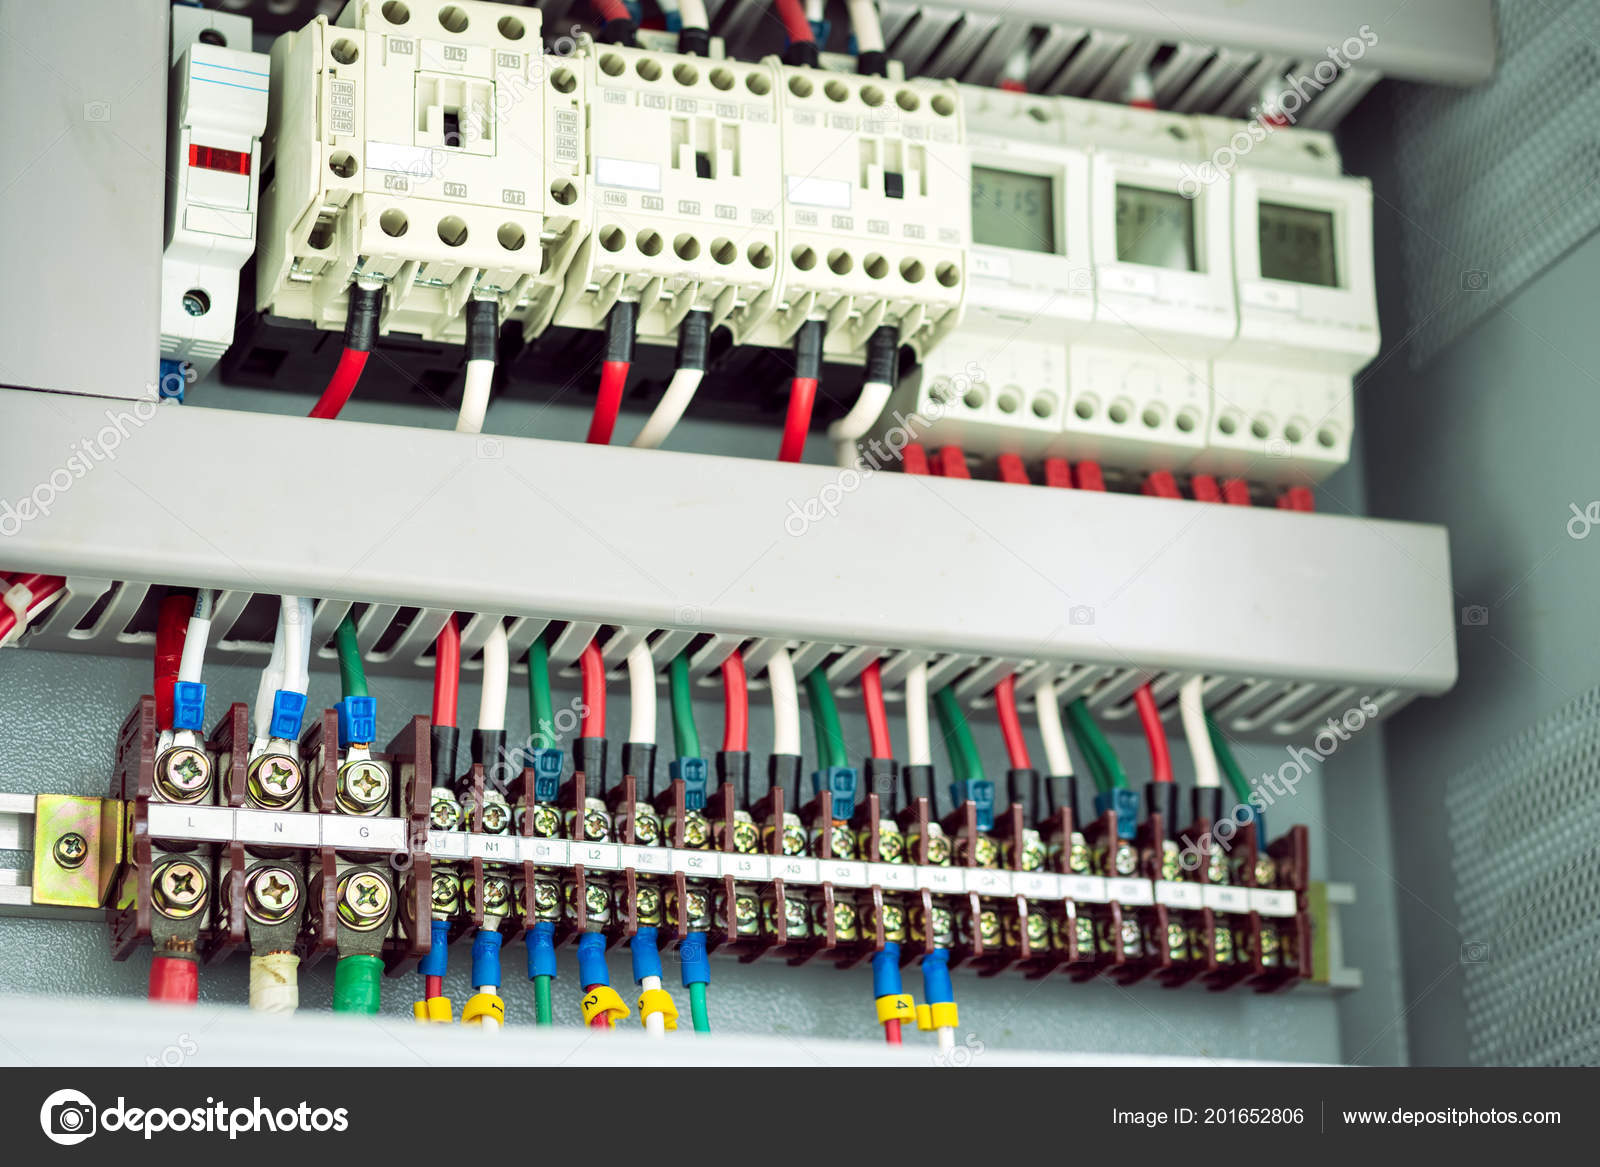 hight resolution of electric box texture background electric control panel many terminals wires stock photo